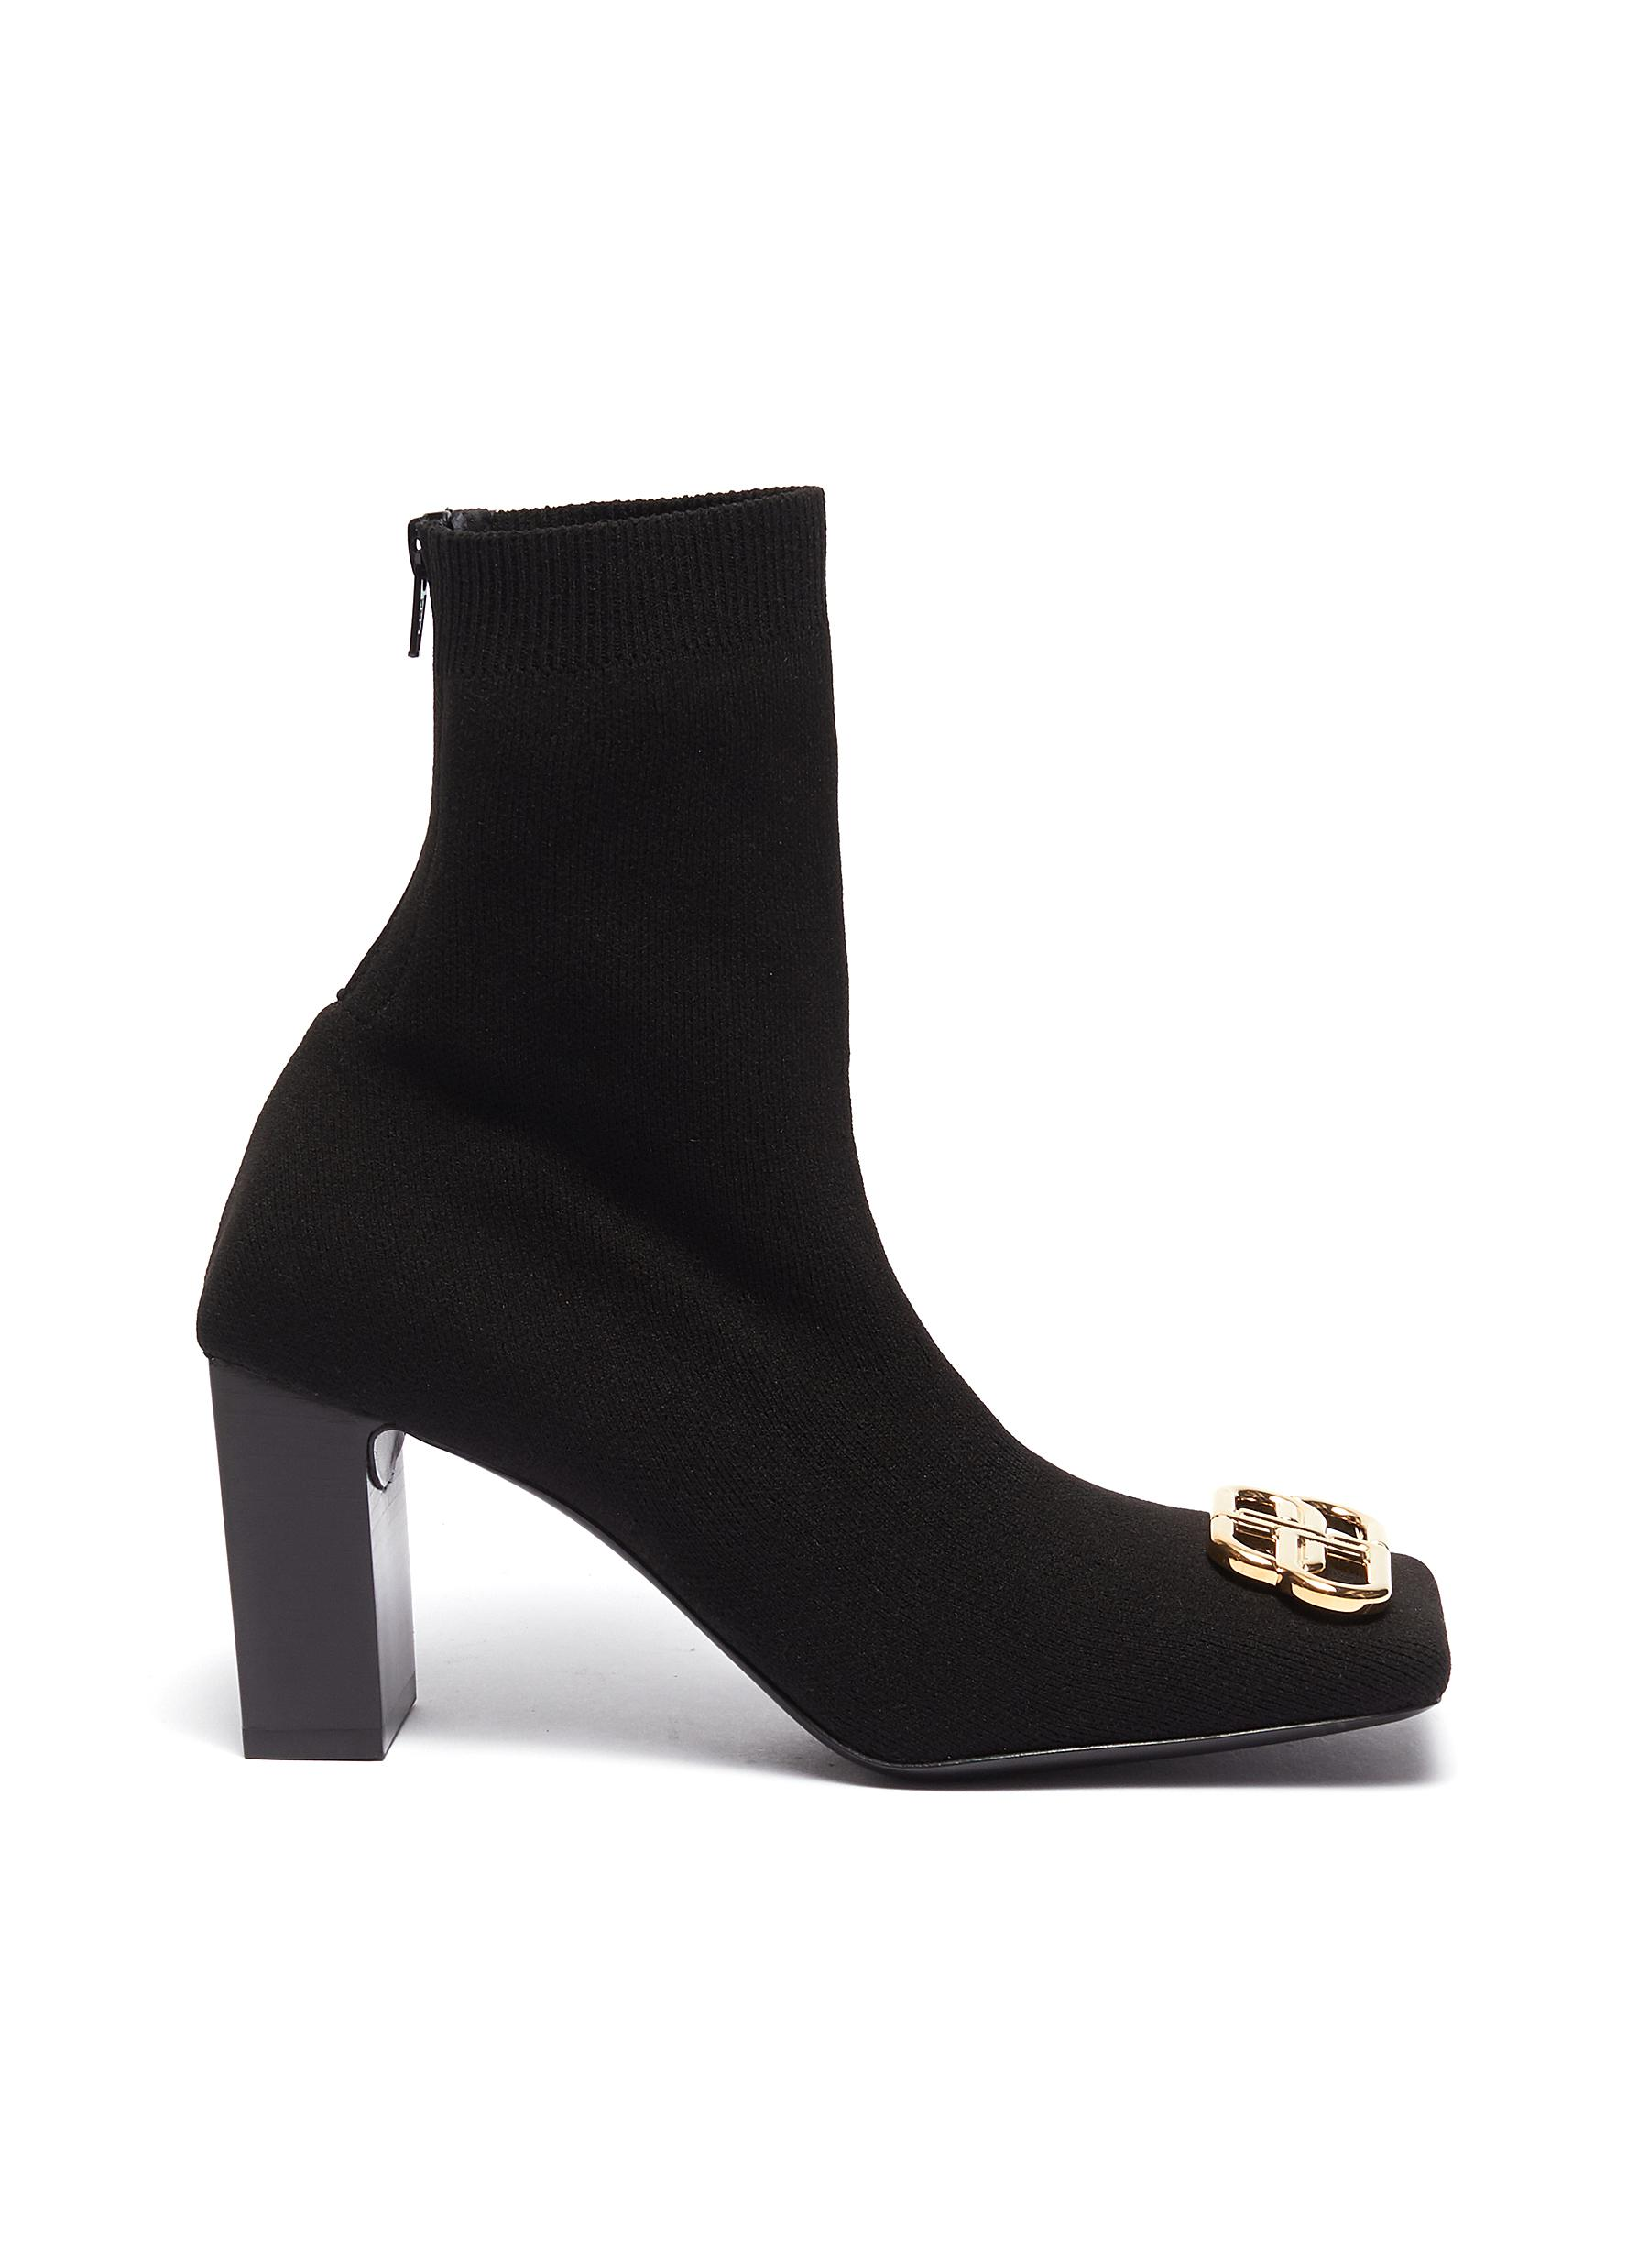 Balenciaga Boots 'Double Square' logo plaque knit ankle boots